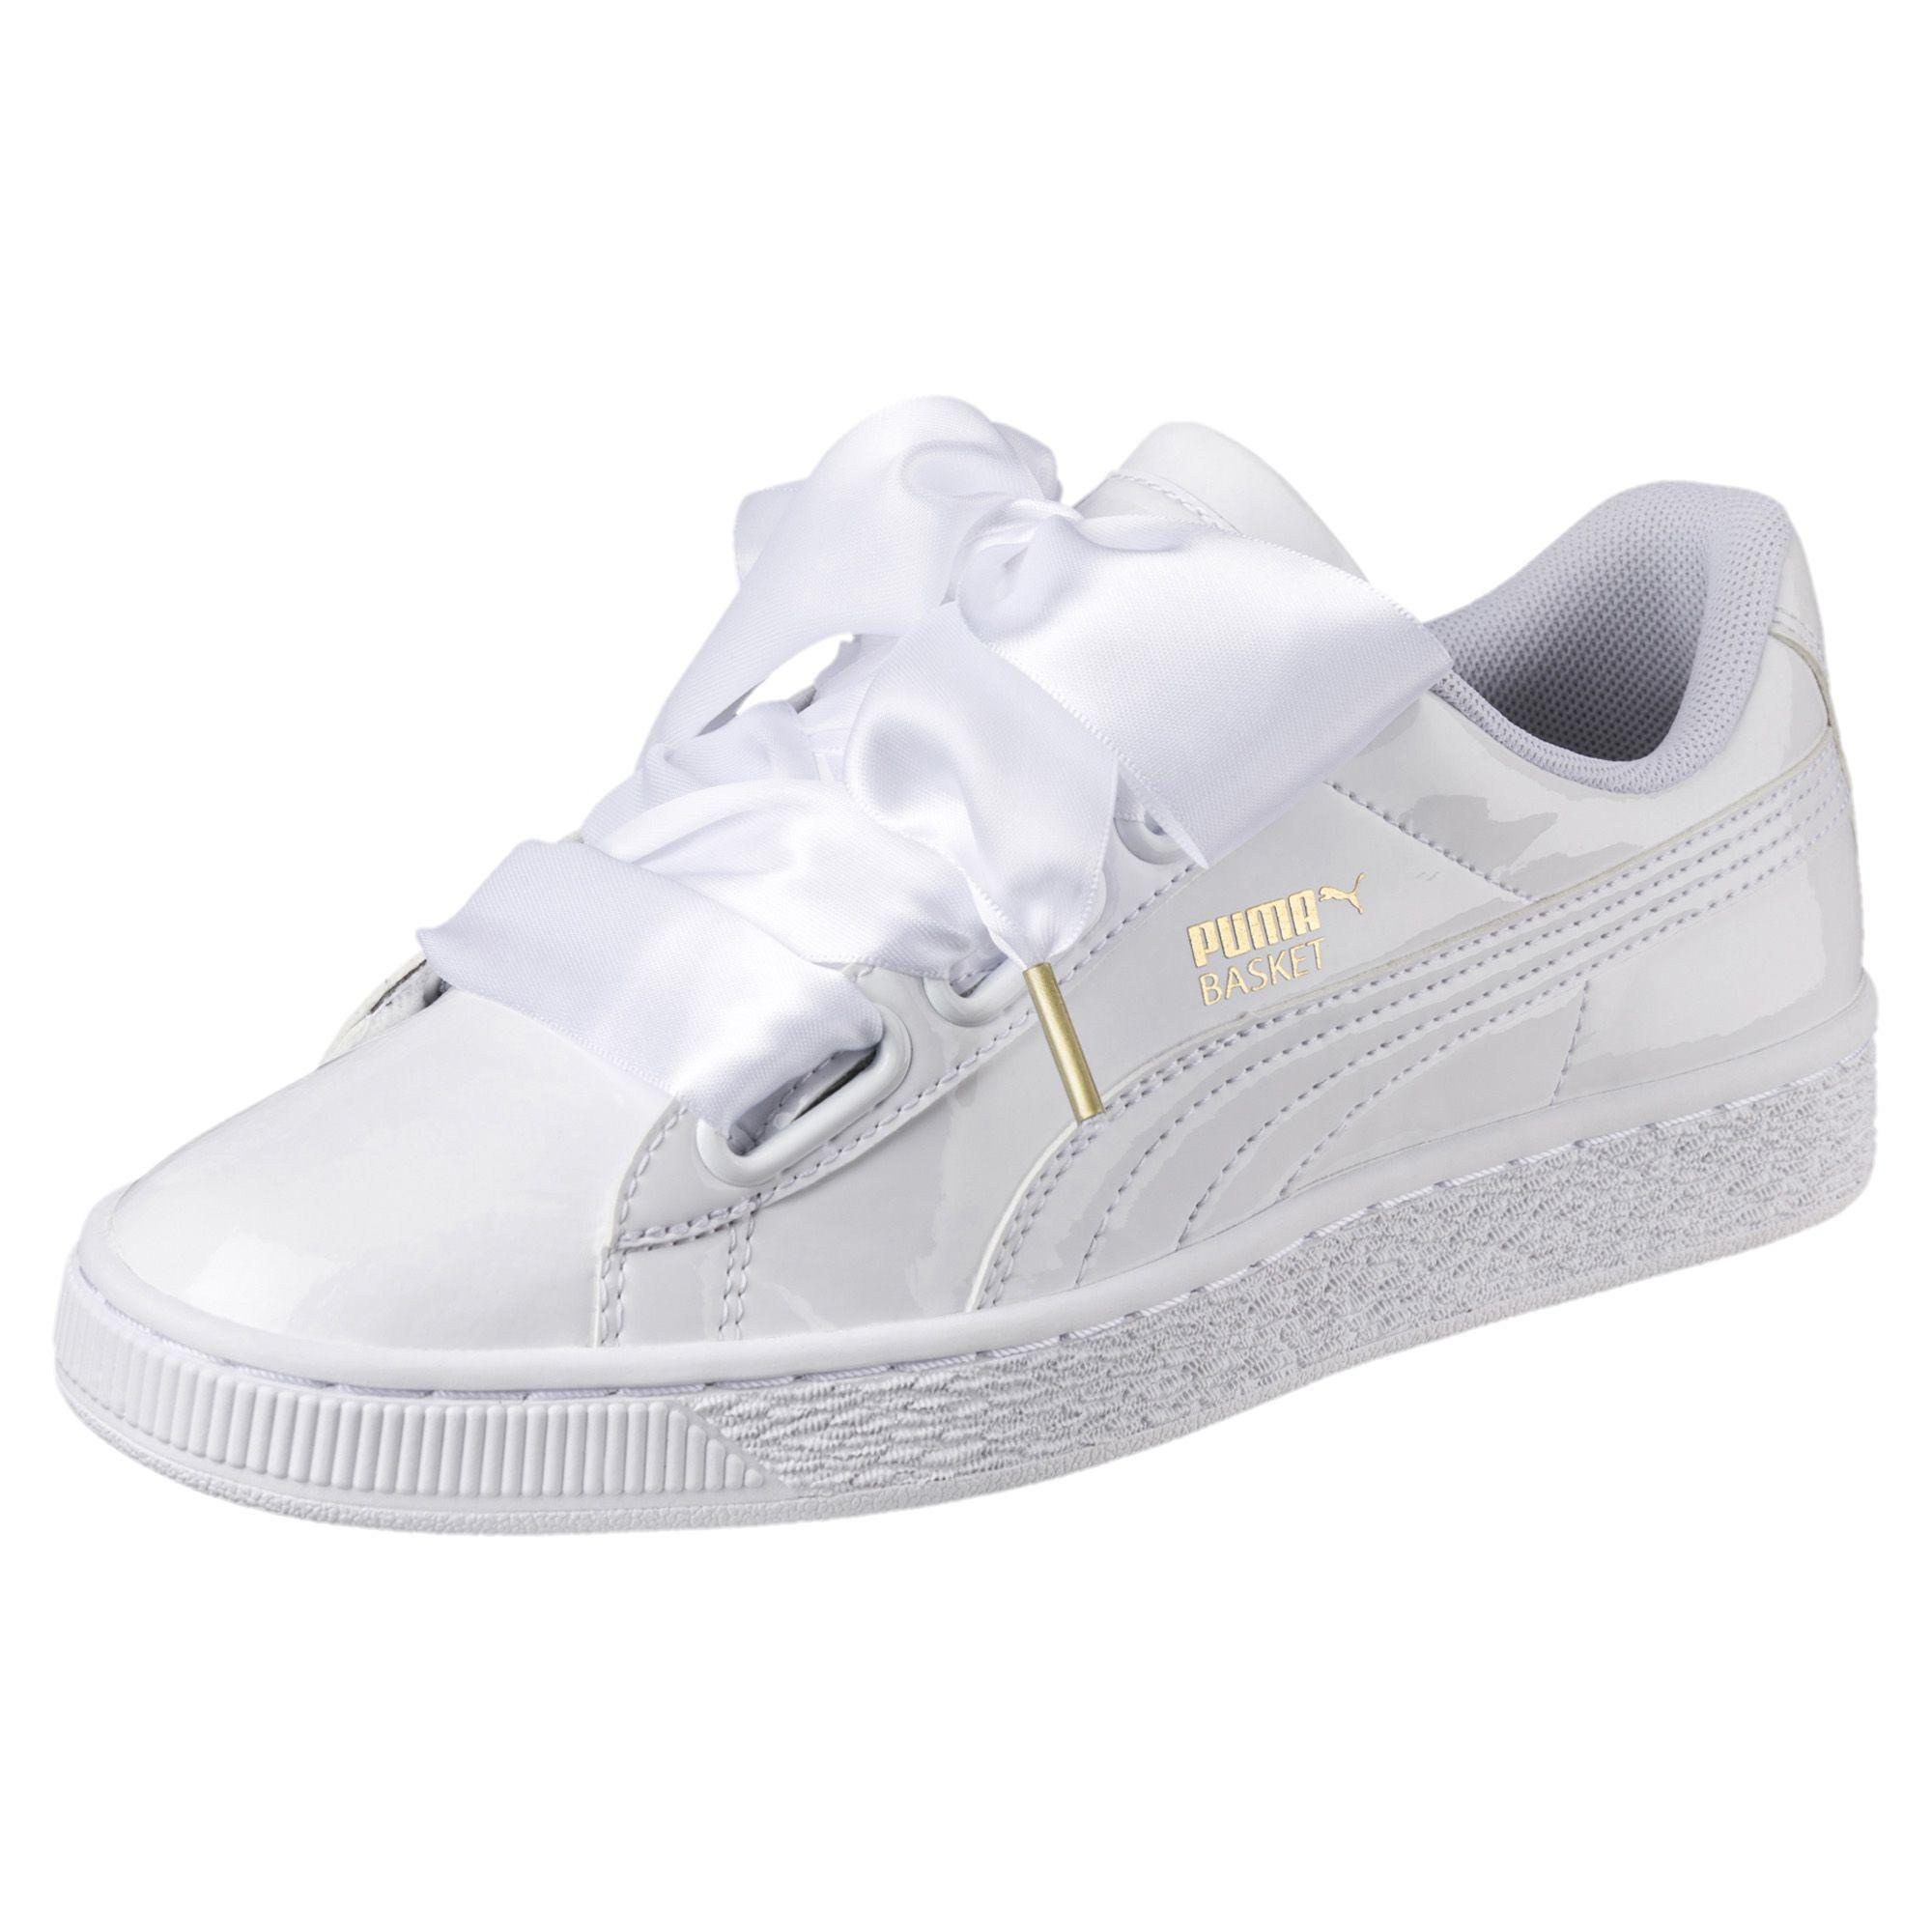 Lyst - PUMA Basket Heart Patent Women s Sneakers in White 3955f35f3